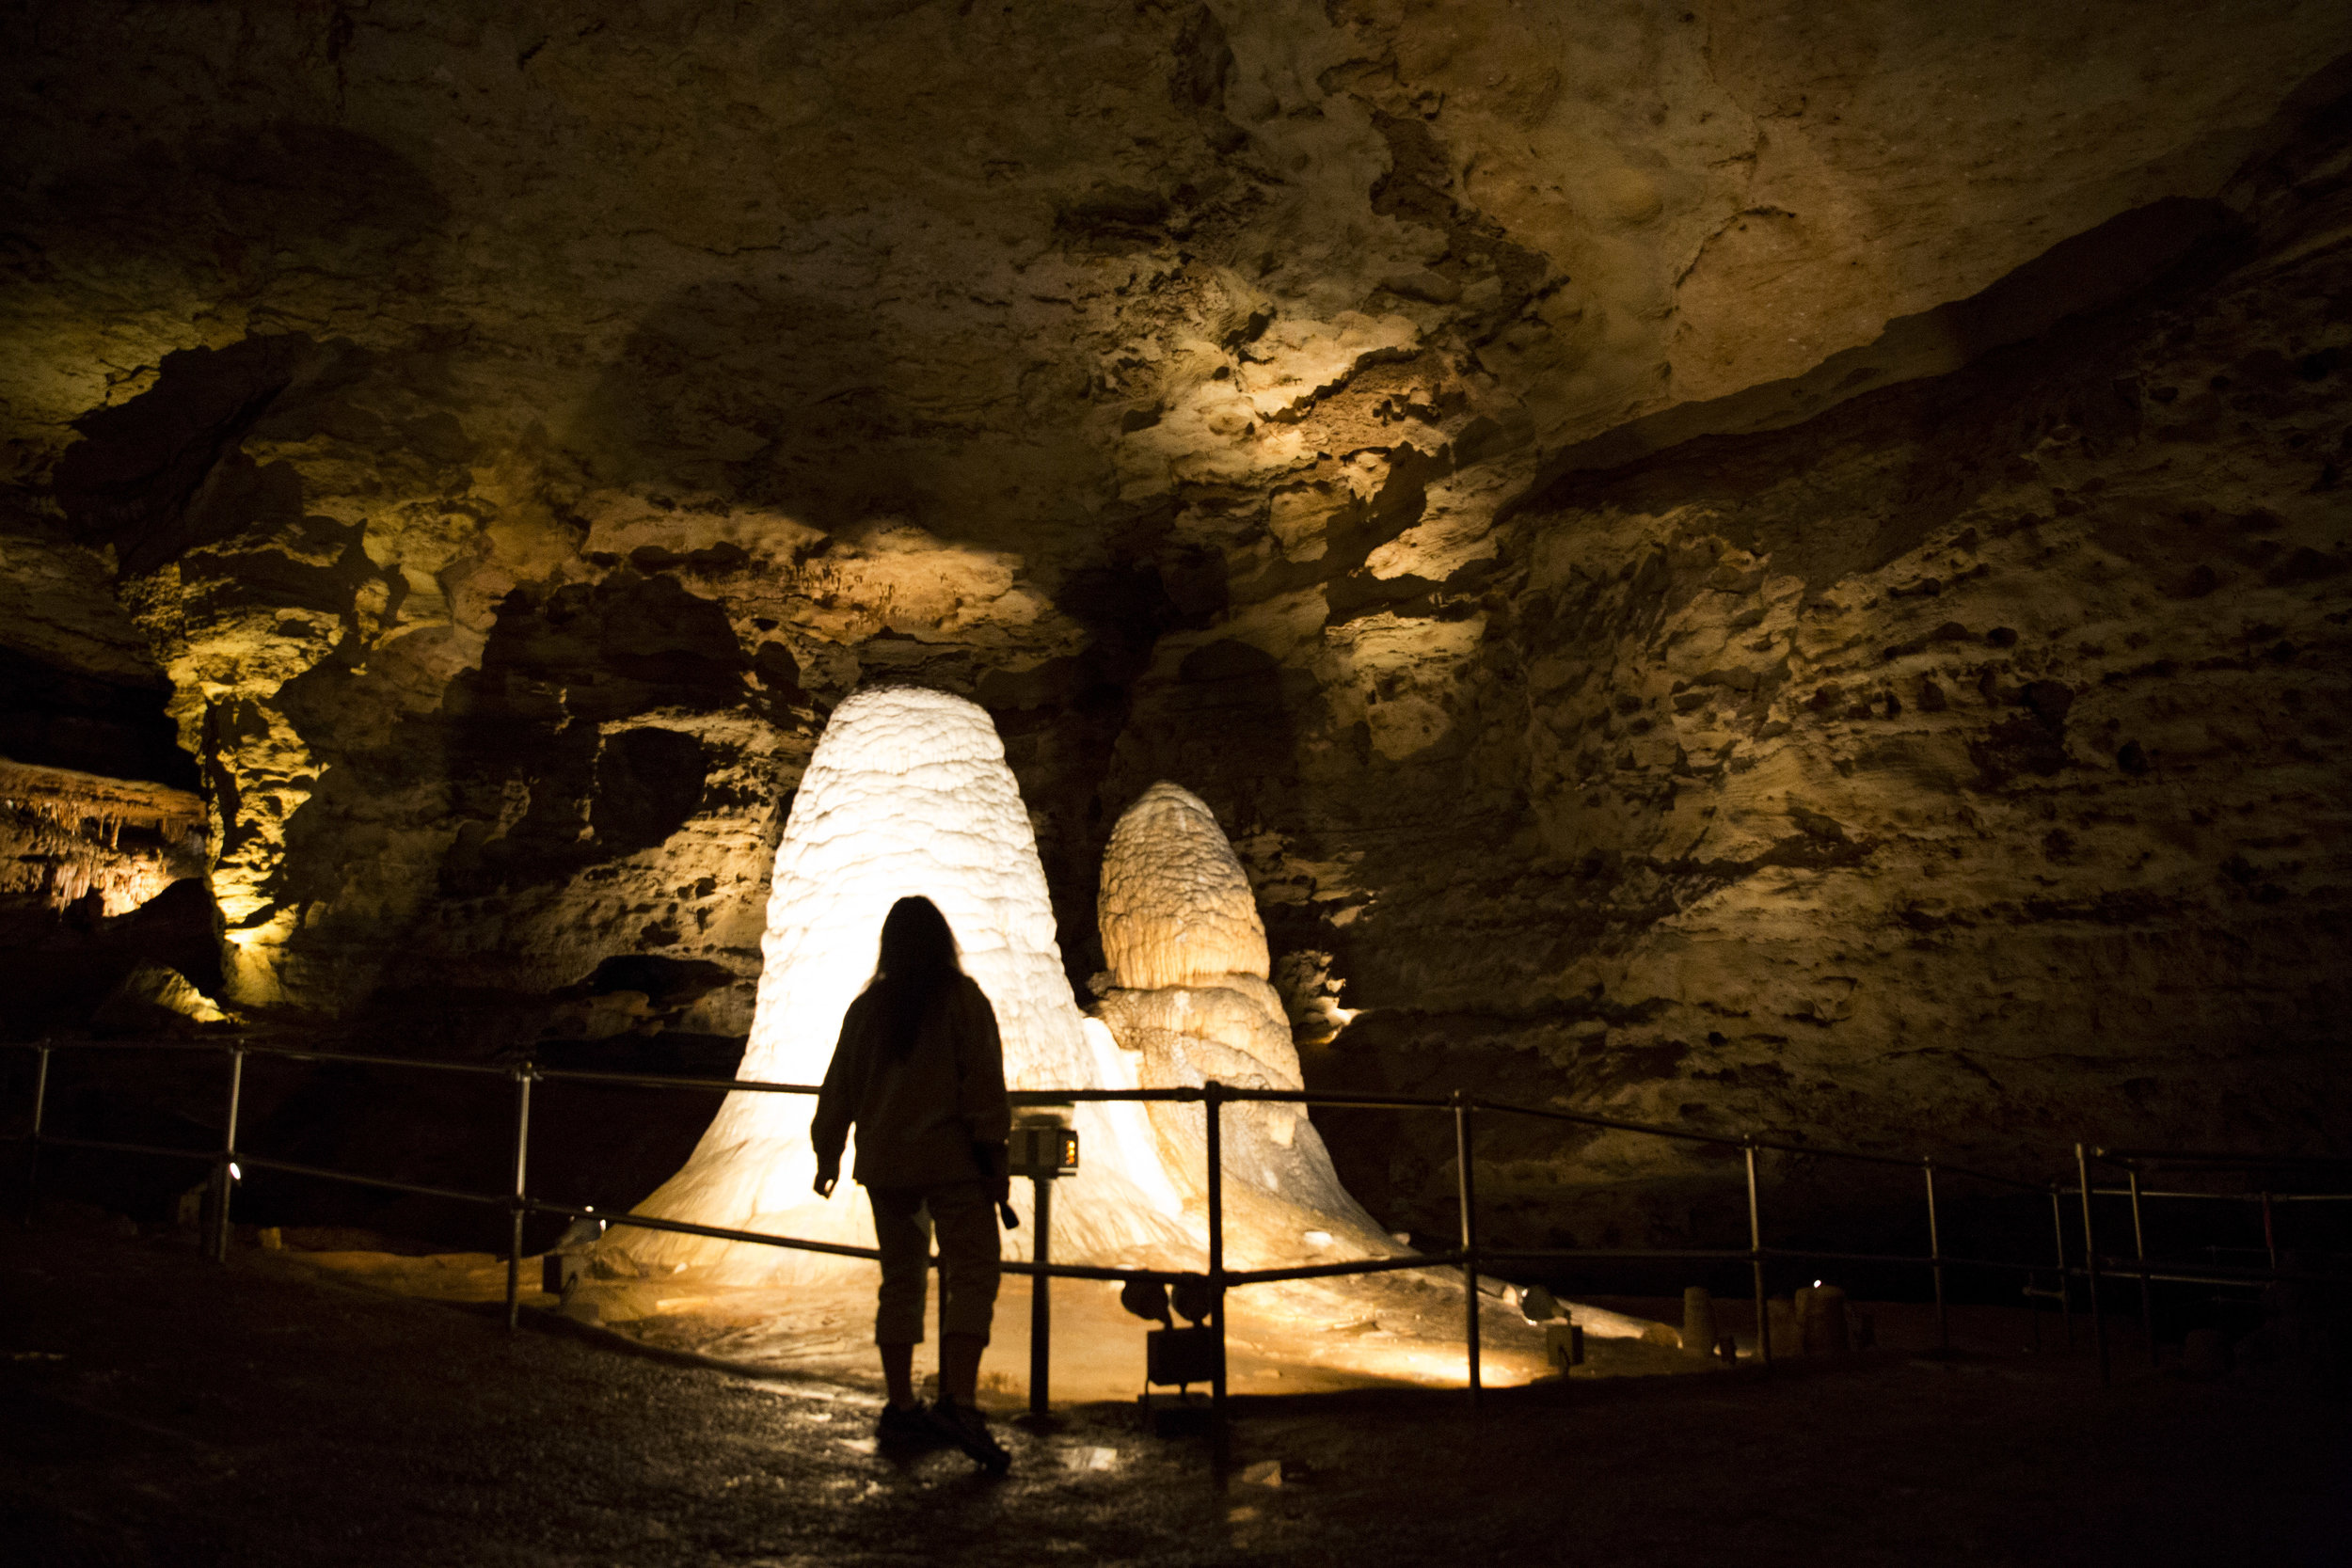 """Lorian Moore, who works at the Onondaga Caves State Park stands in front of the approximately 500,000-year-old stalactites called """"The Twins."""" She works at the park two days a week giving tours and organizing events for Onondaga Friends Association, which is the park's non-profit organization that she helped establish."""